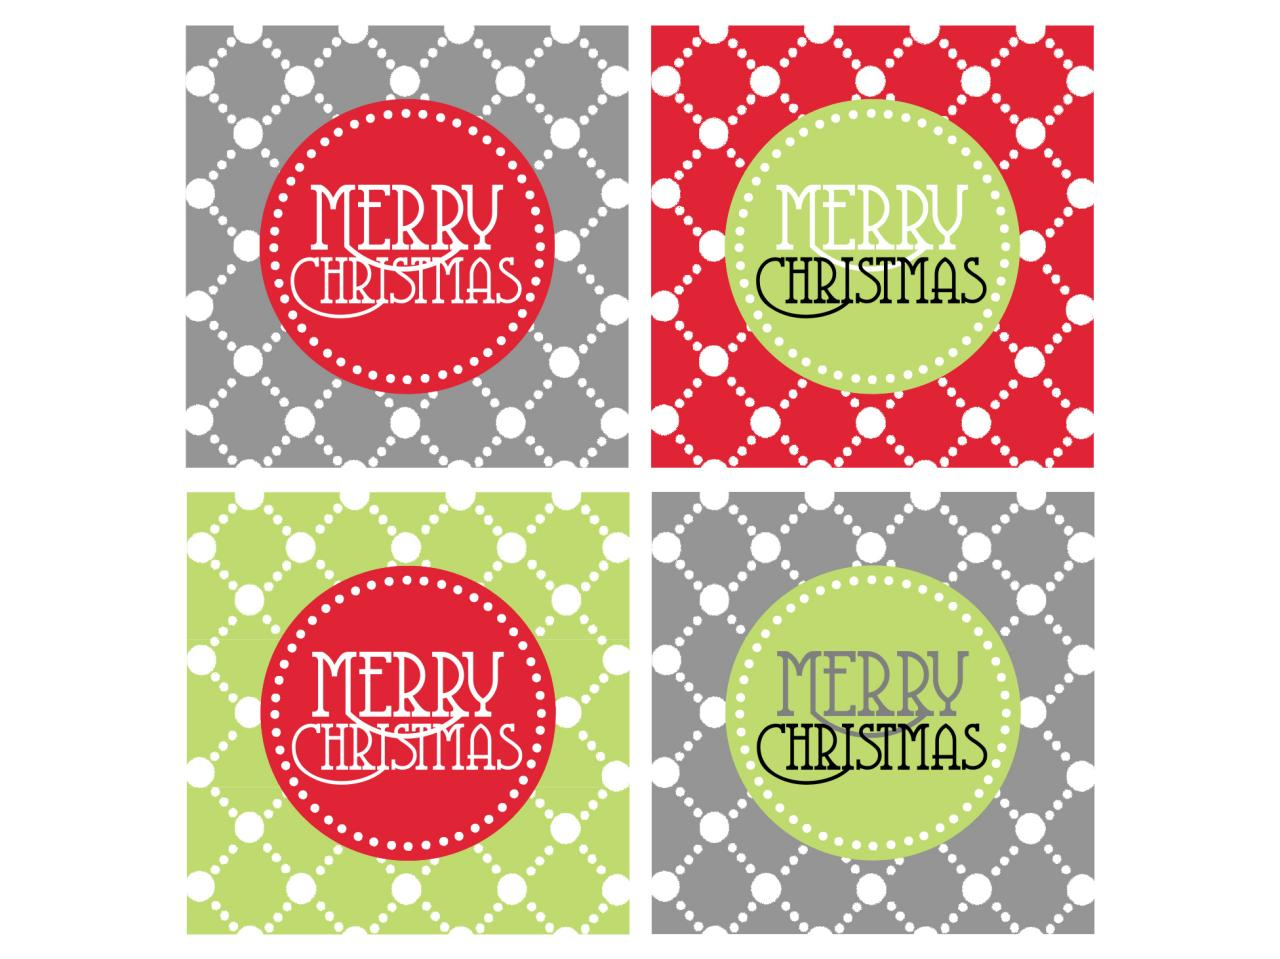 Free Printable Christmas Designs – Festival Collections - Free Printable Christmas Designs